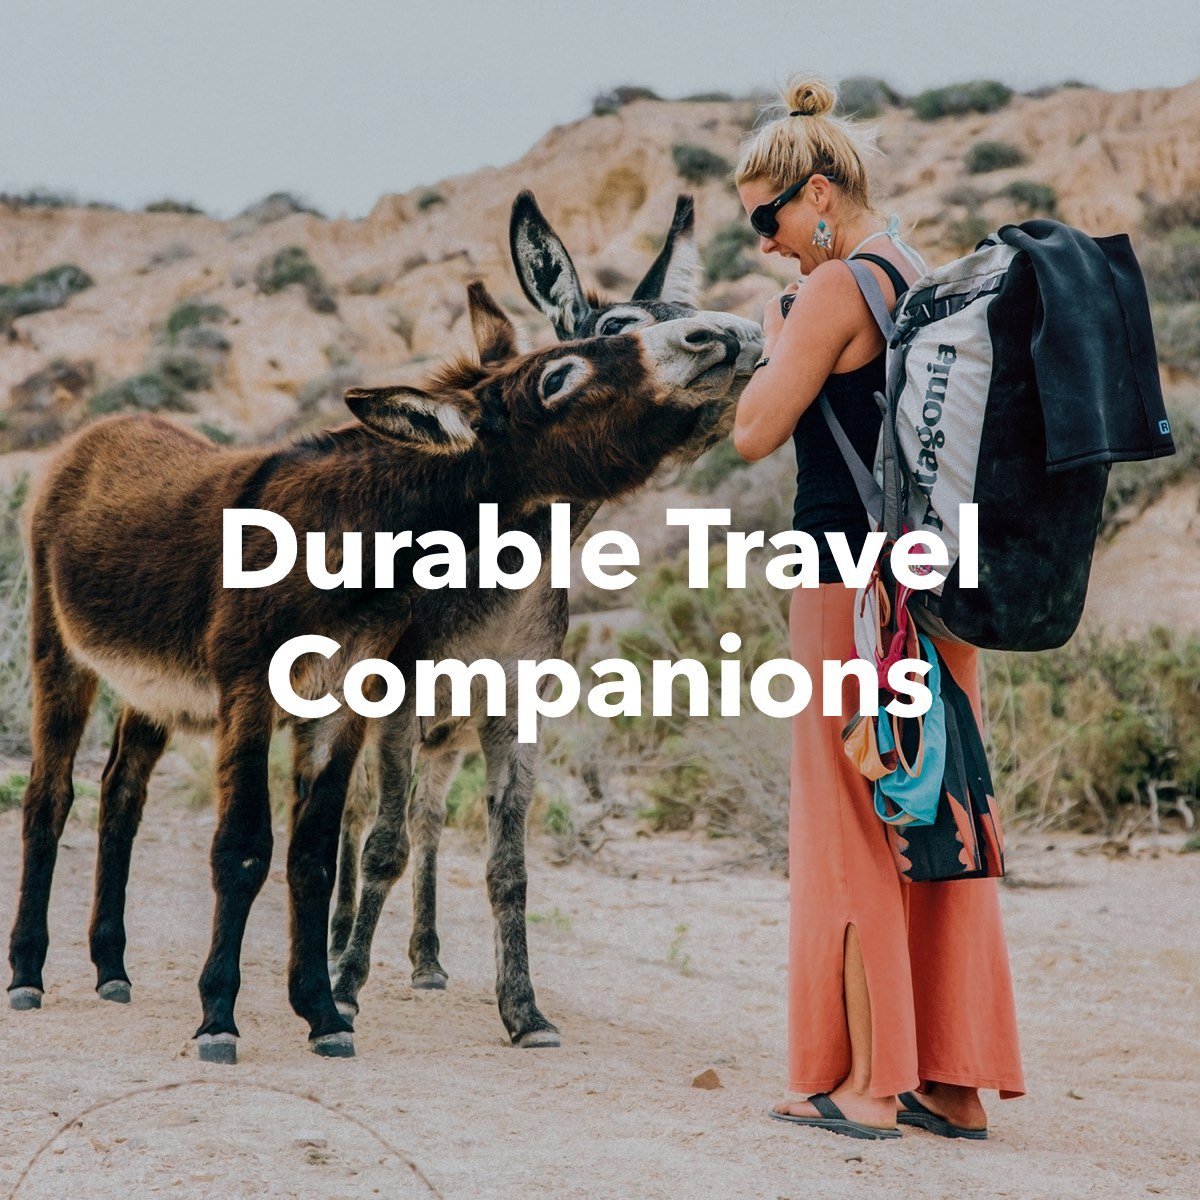 Durable Travel Companions